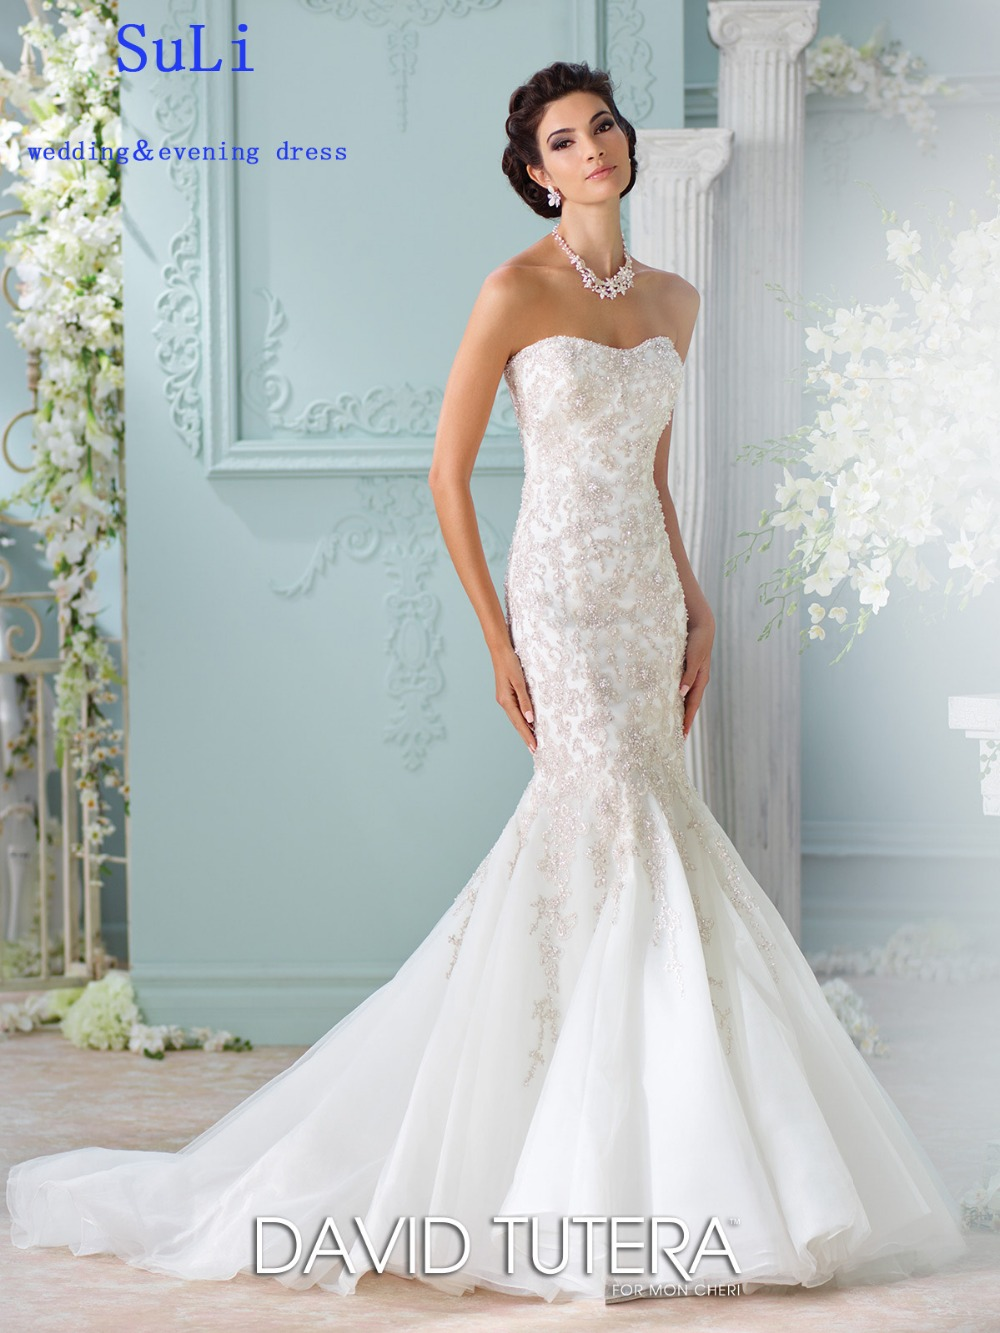 Fine Bridal Gown Clearance Ornament - Ball Gown Wedding Dresses ...